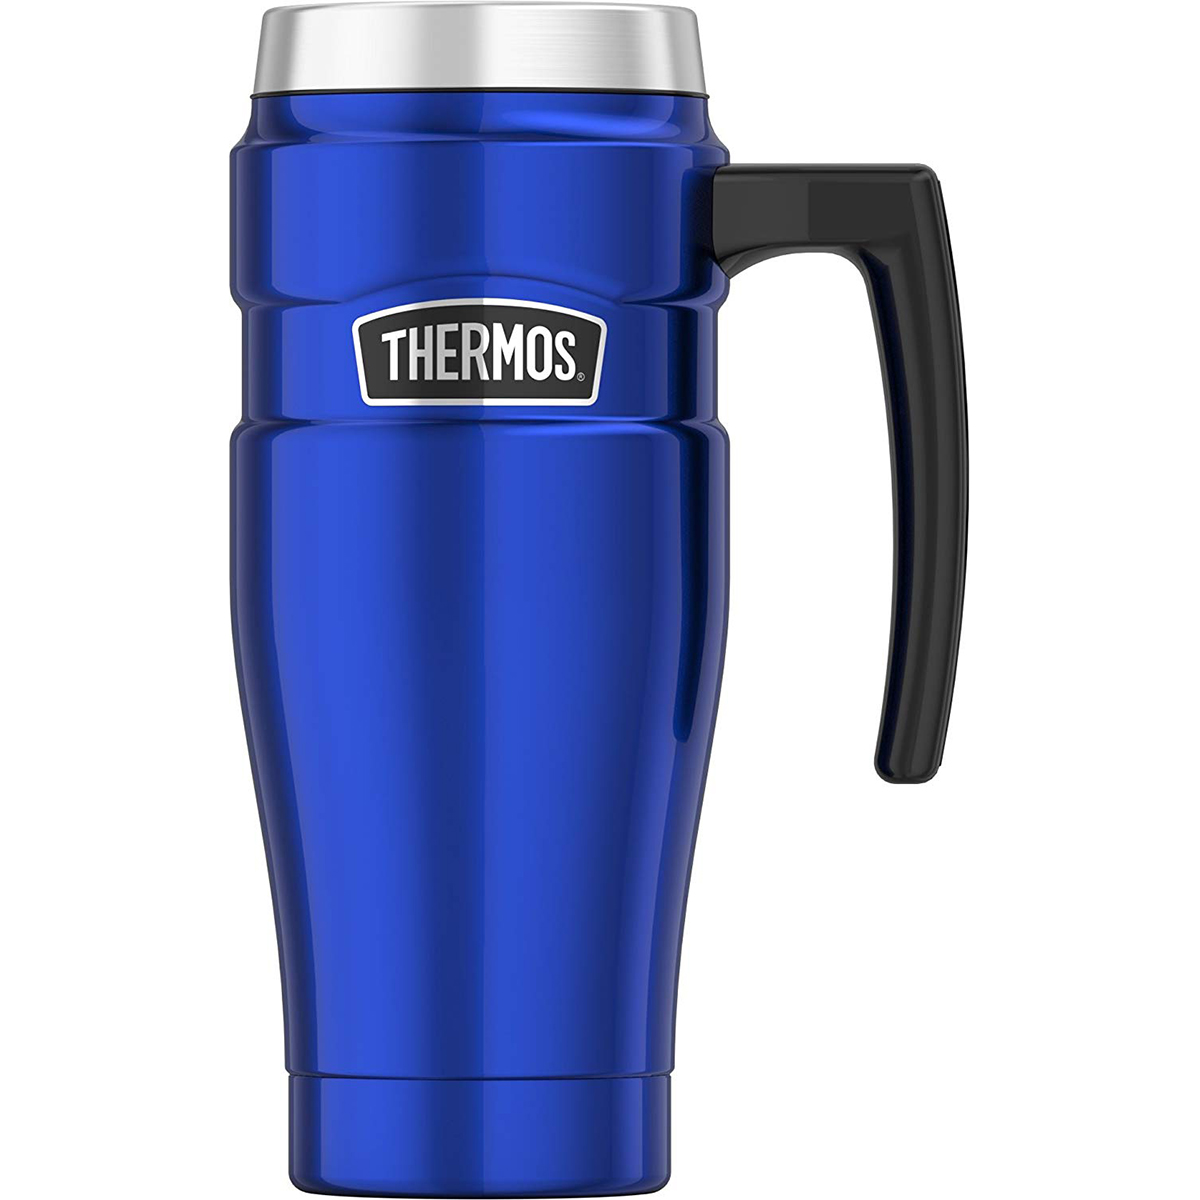 thumbnail 7 - Thermos 16 oz. Stainless King Insulated Stainless Steel Travel Mug with Handle